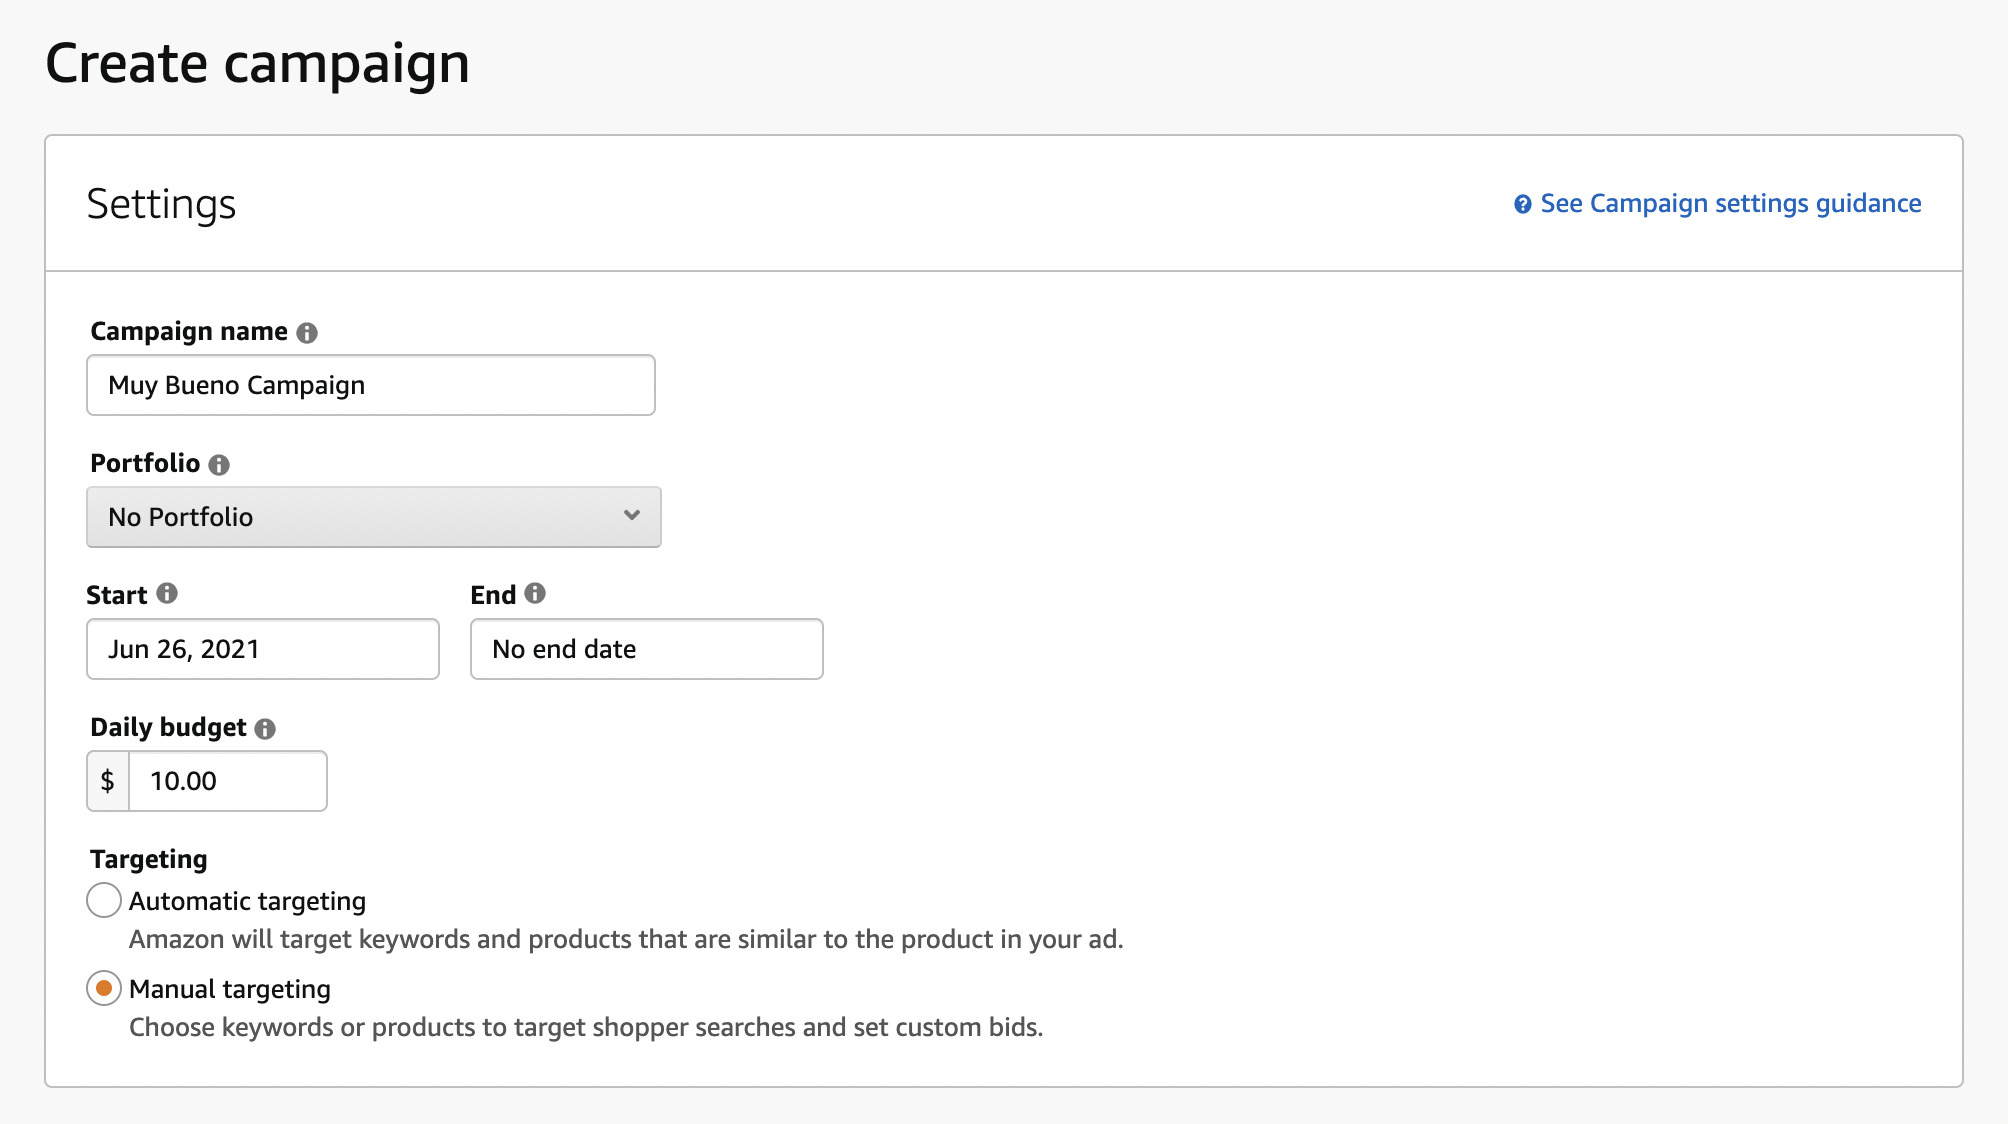 Set your campaign name, portfolio, dates, budget, and targeting type